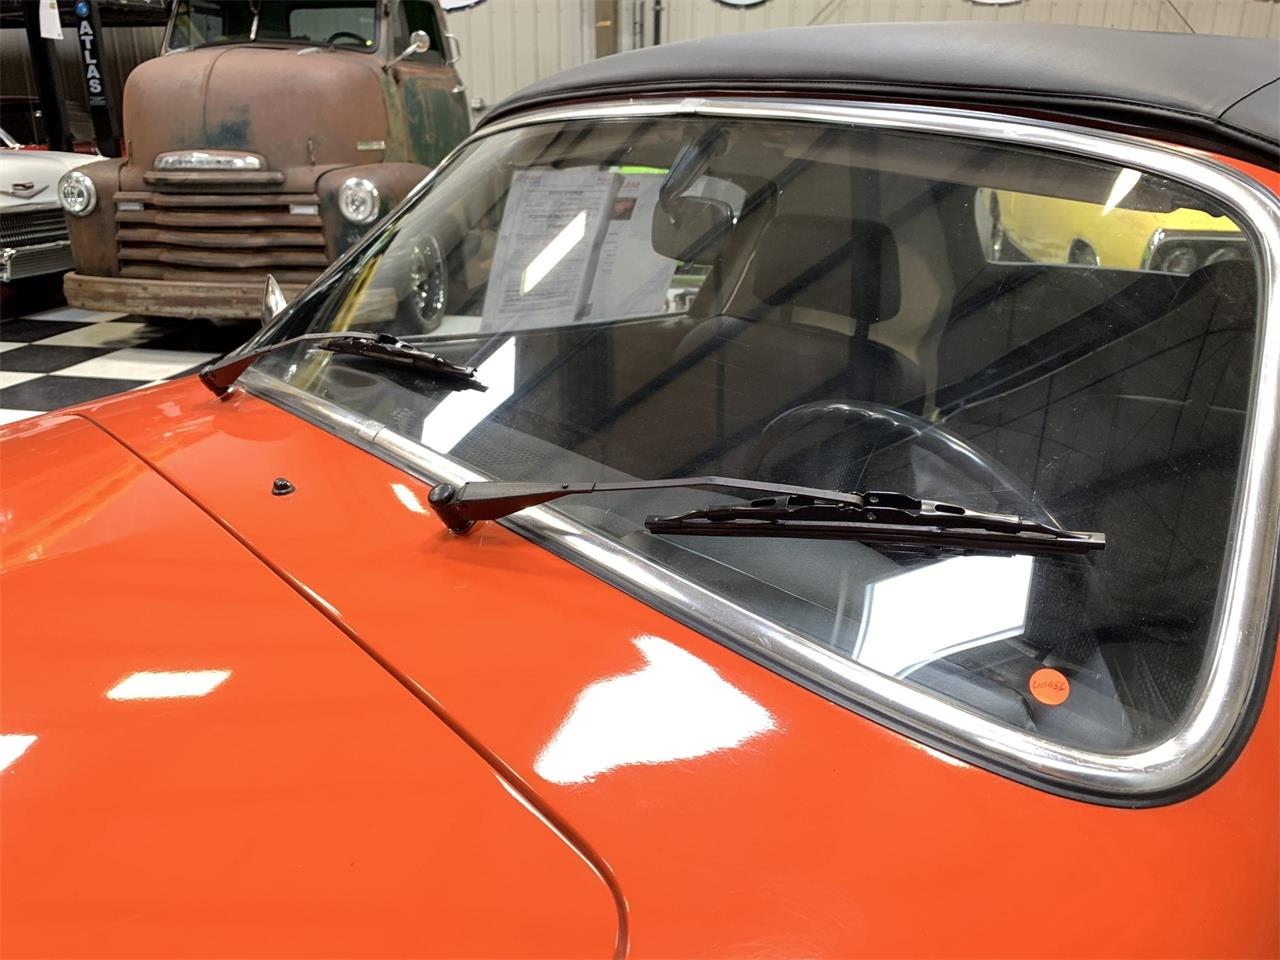 1974 Volkswagen Karmann Ghia for sale in Pittsburgh, PA – photo 24